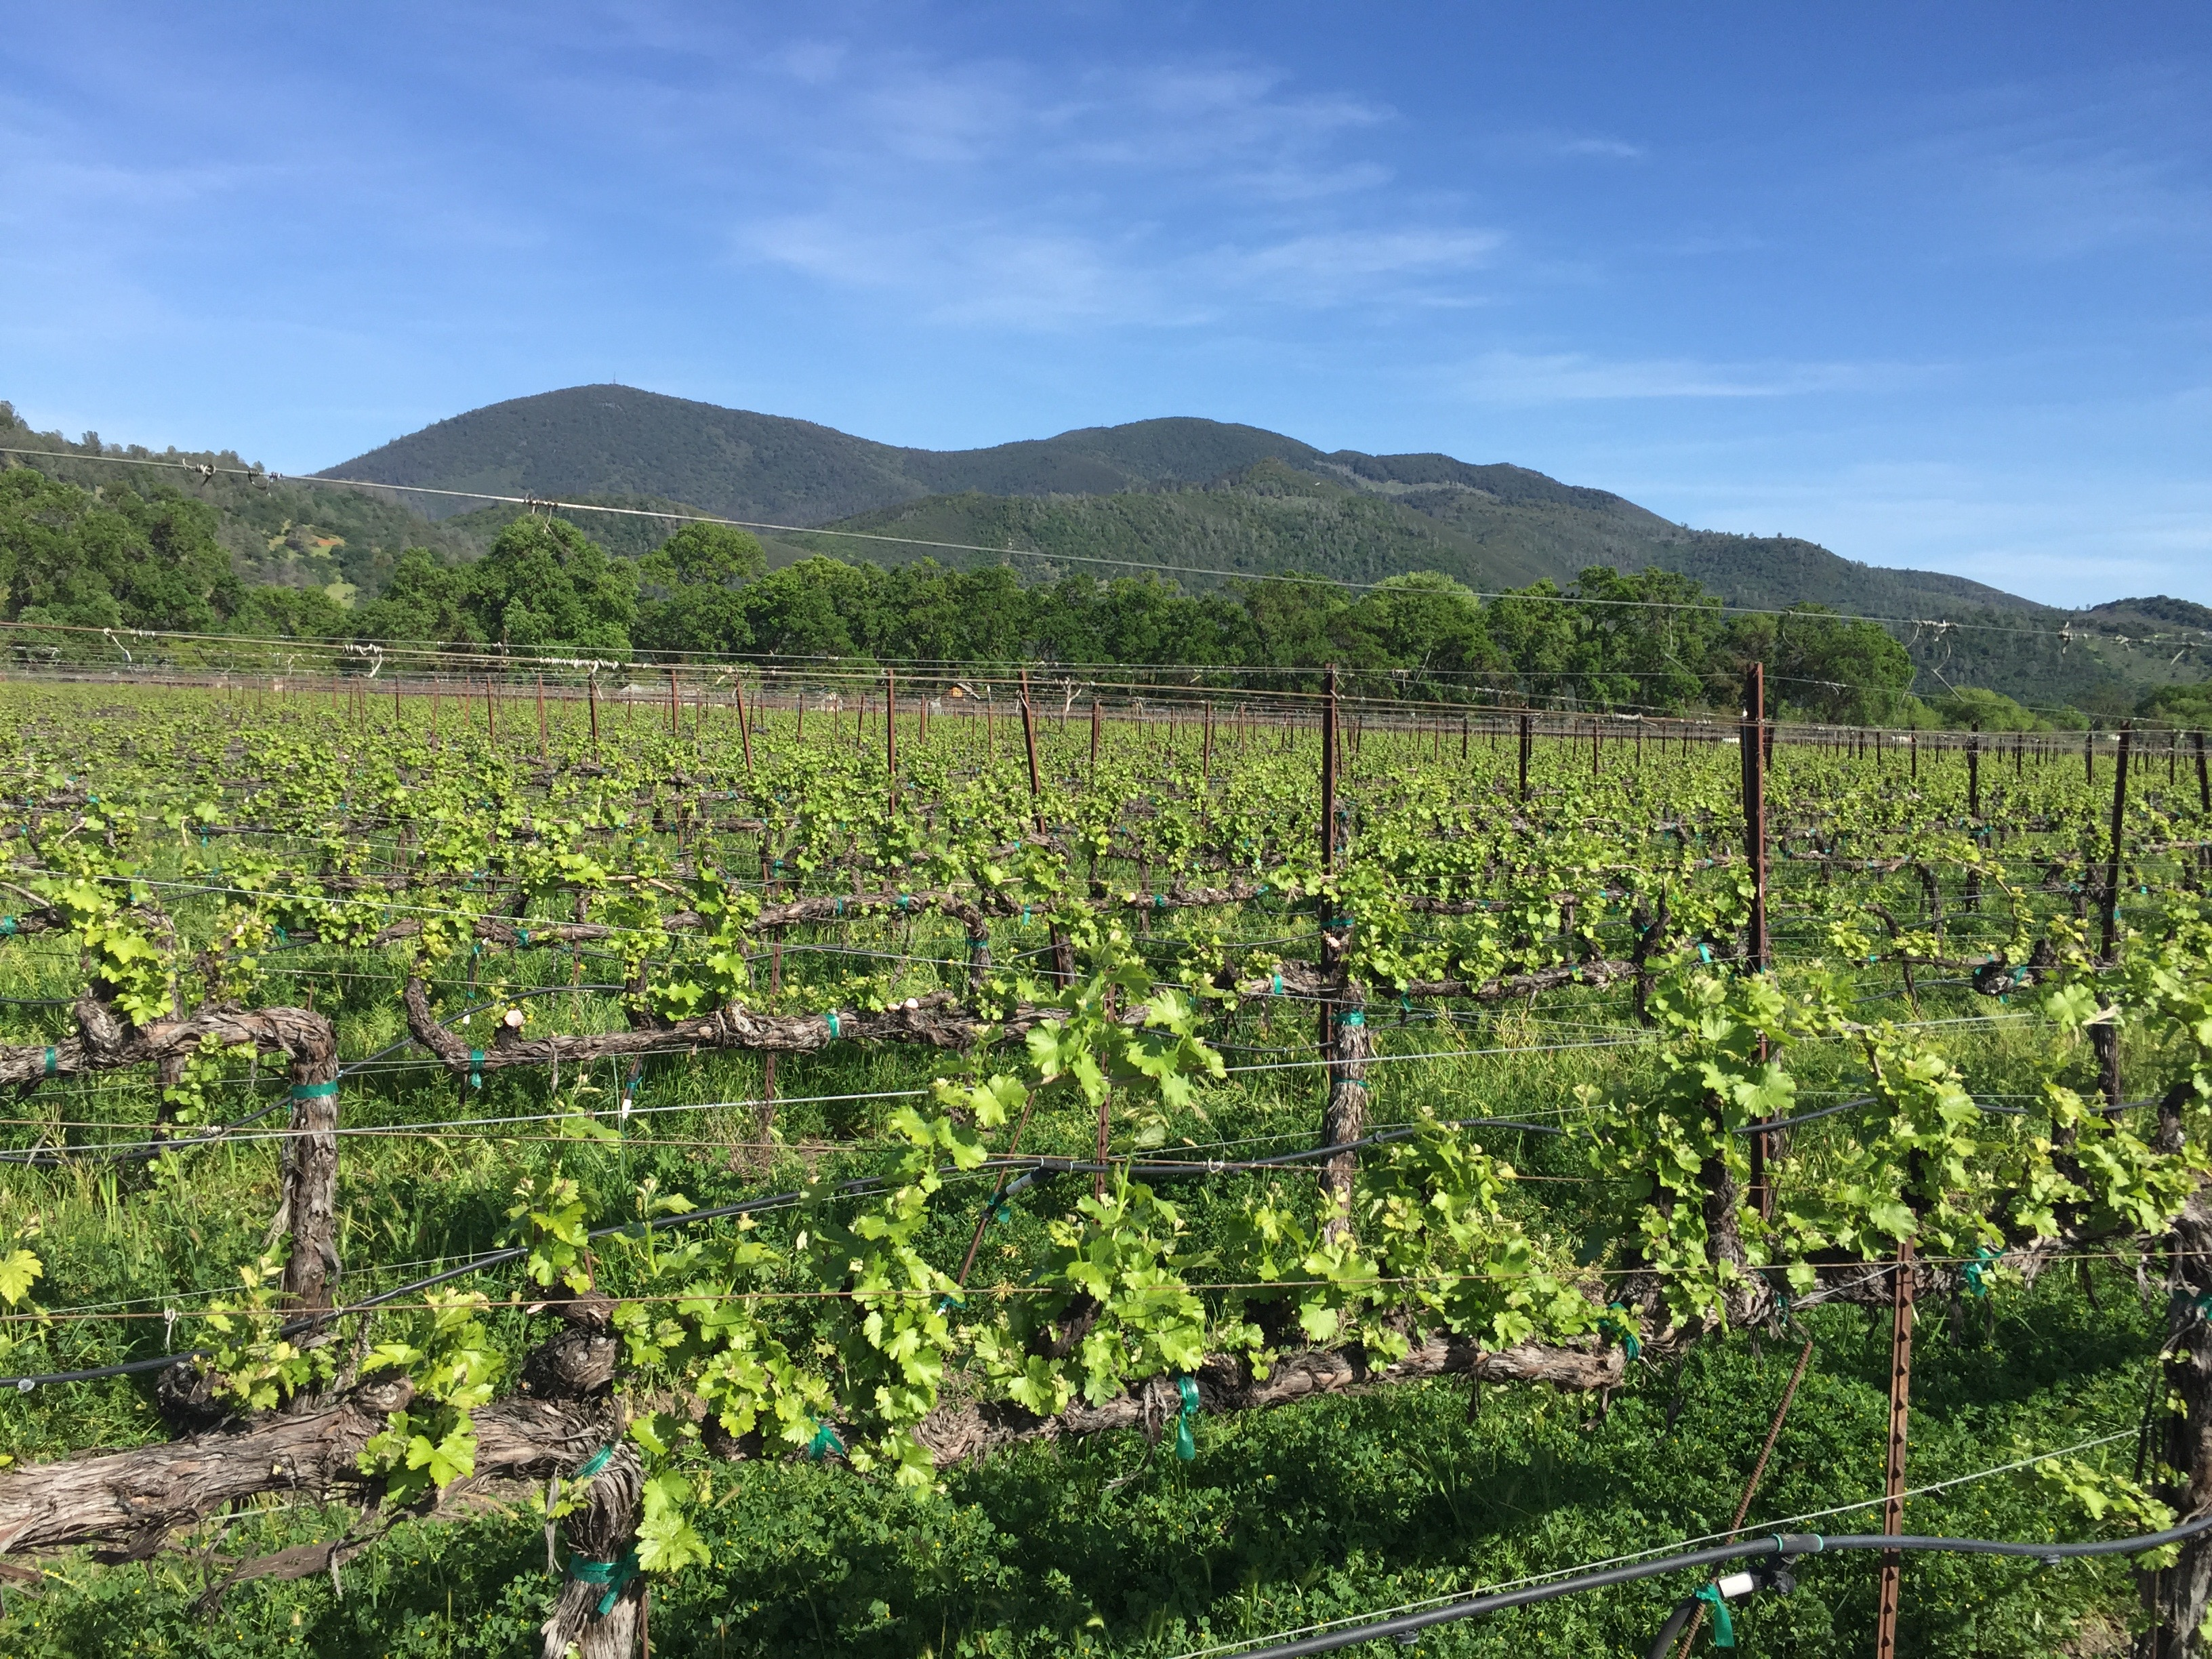 Vineyard w/ Mt. Konocti